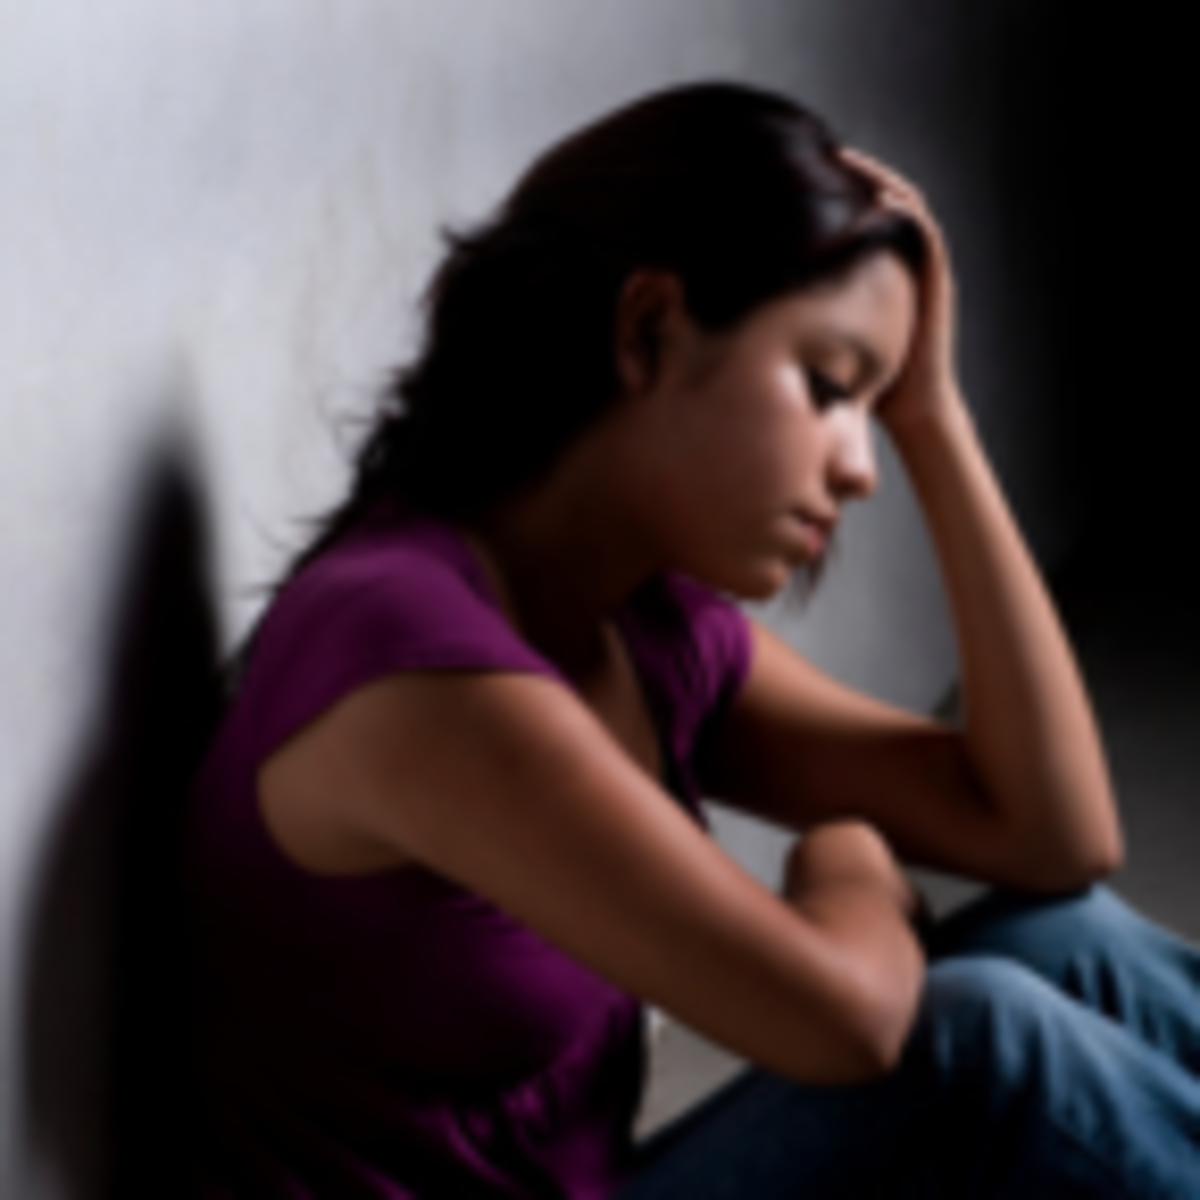 Healing Emotional Pain: How to Recover When Life Crushes You